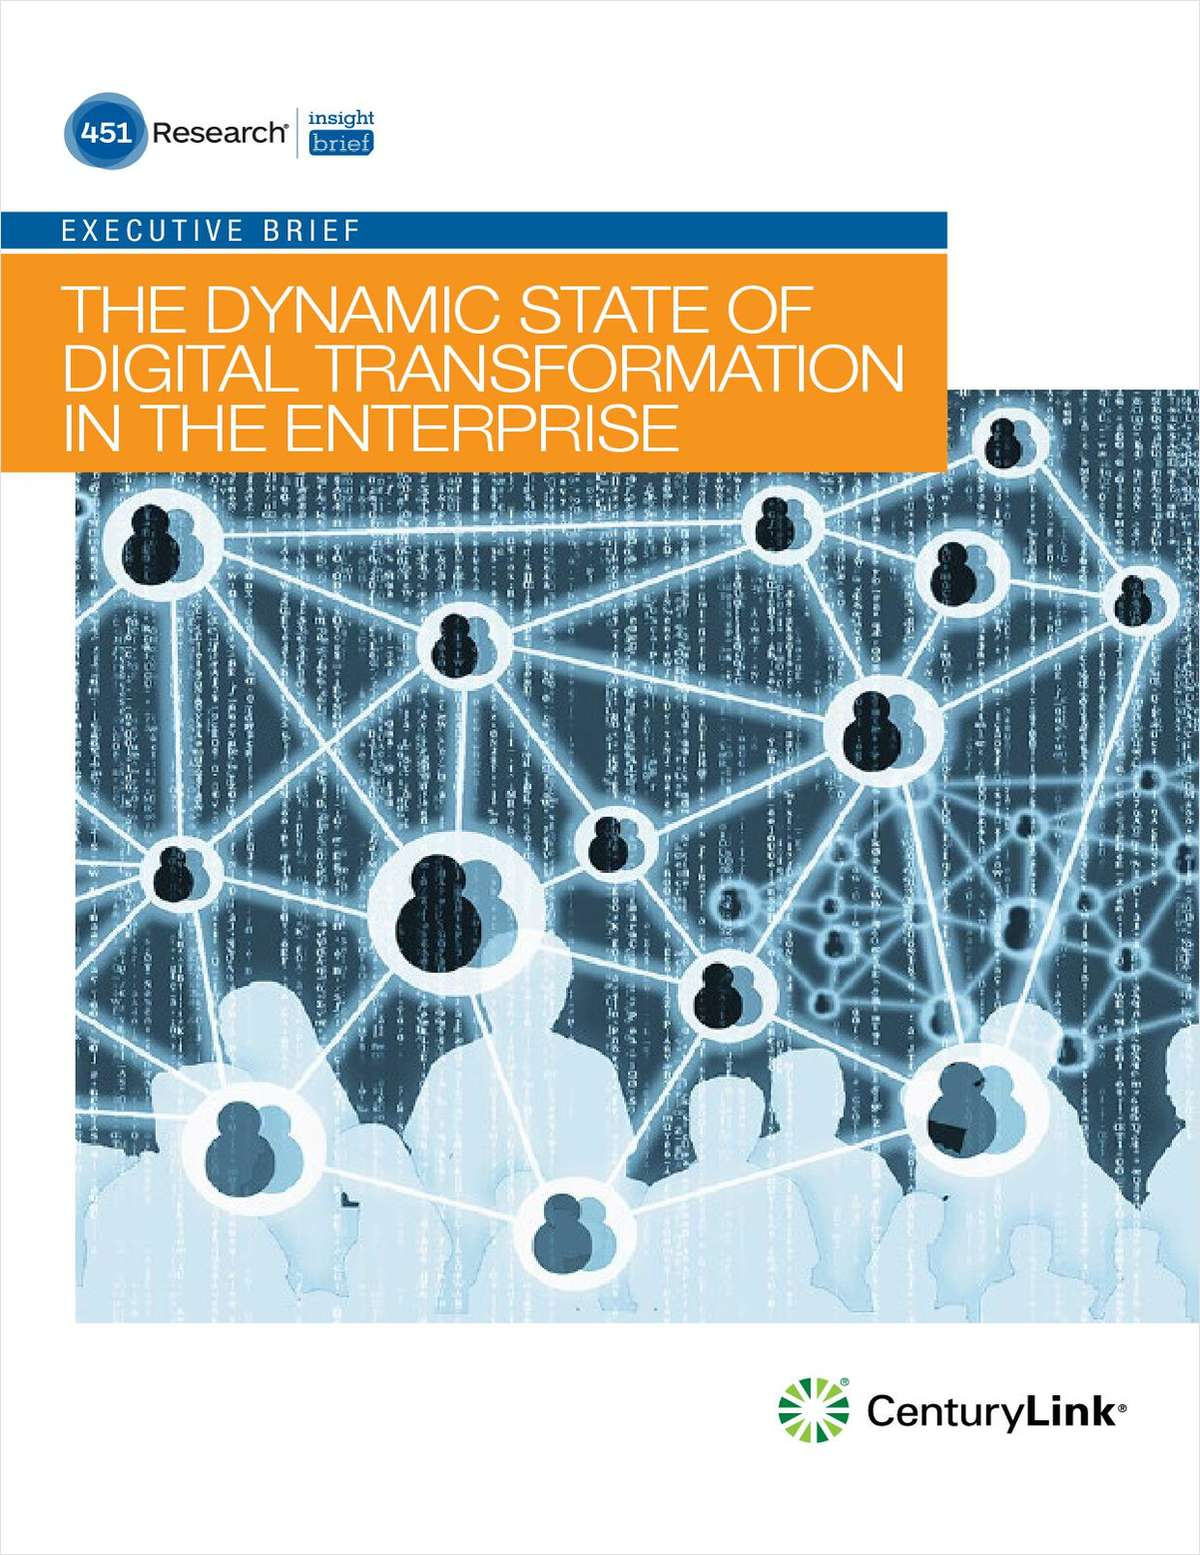 The Dynamic State of Digital Transformation in the Enterprise